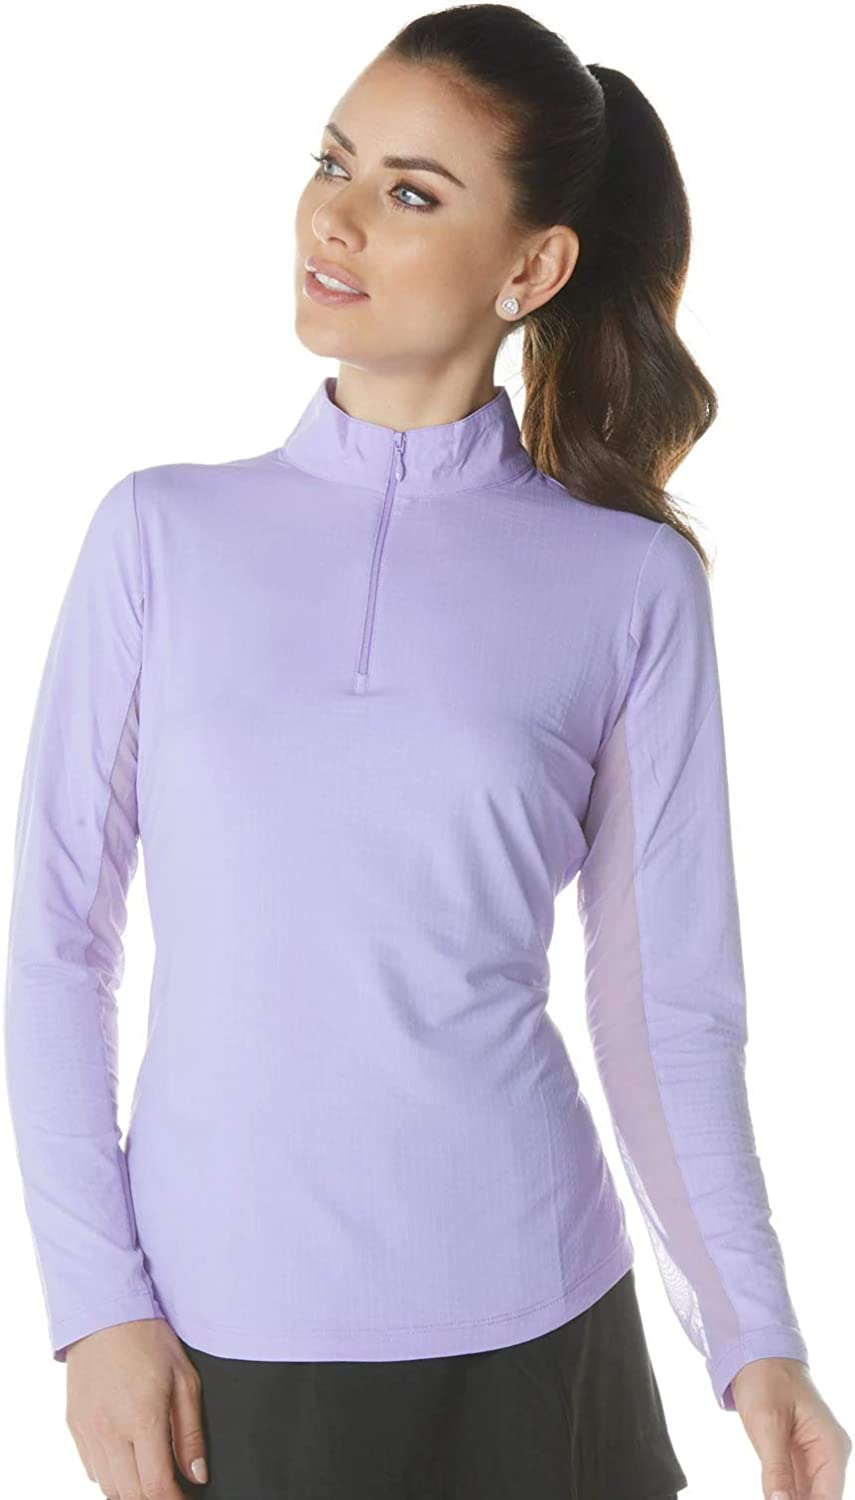 IBKUL Womens Sun Protective UPF 50 Cooling Solid Long Sleeve Mock Neck Top 80000 Seafoam Solid L